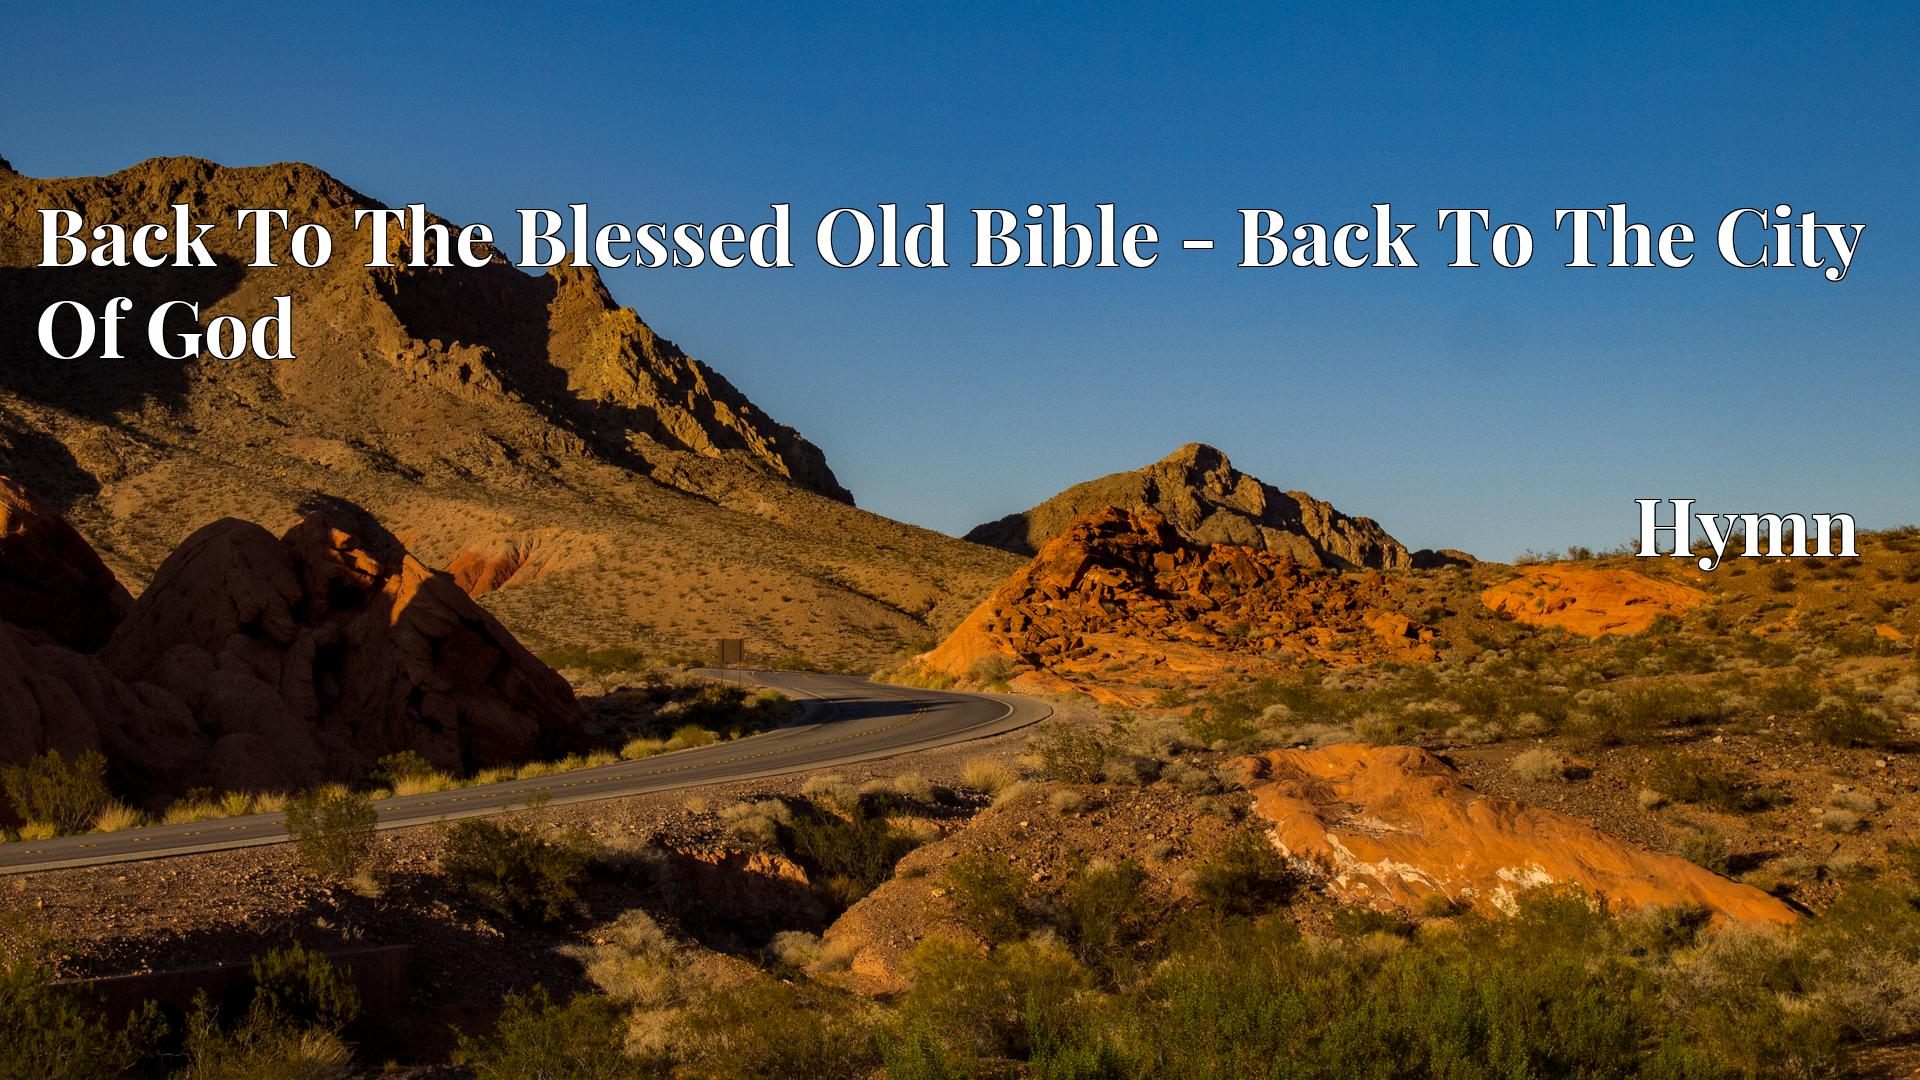 Back To The Blessed Old Bible - Back To The City Of God - Hymn